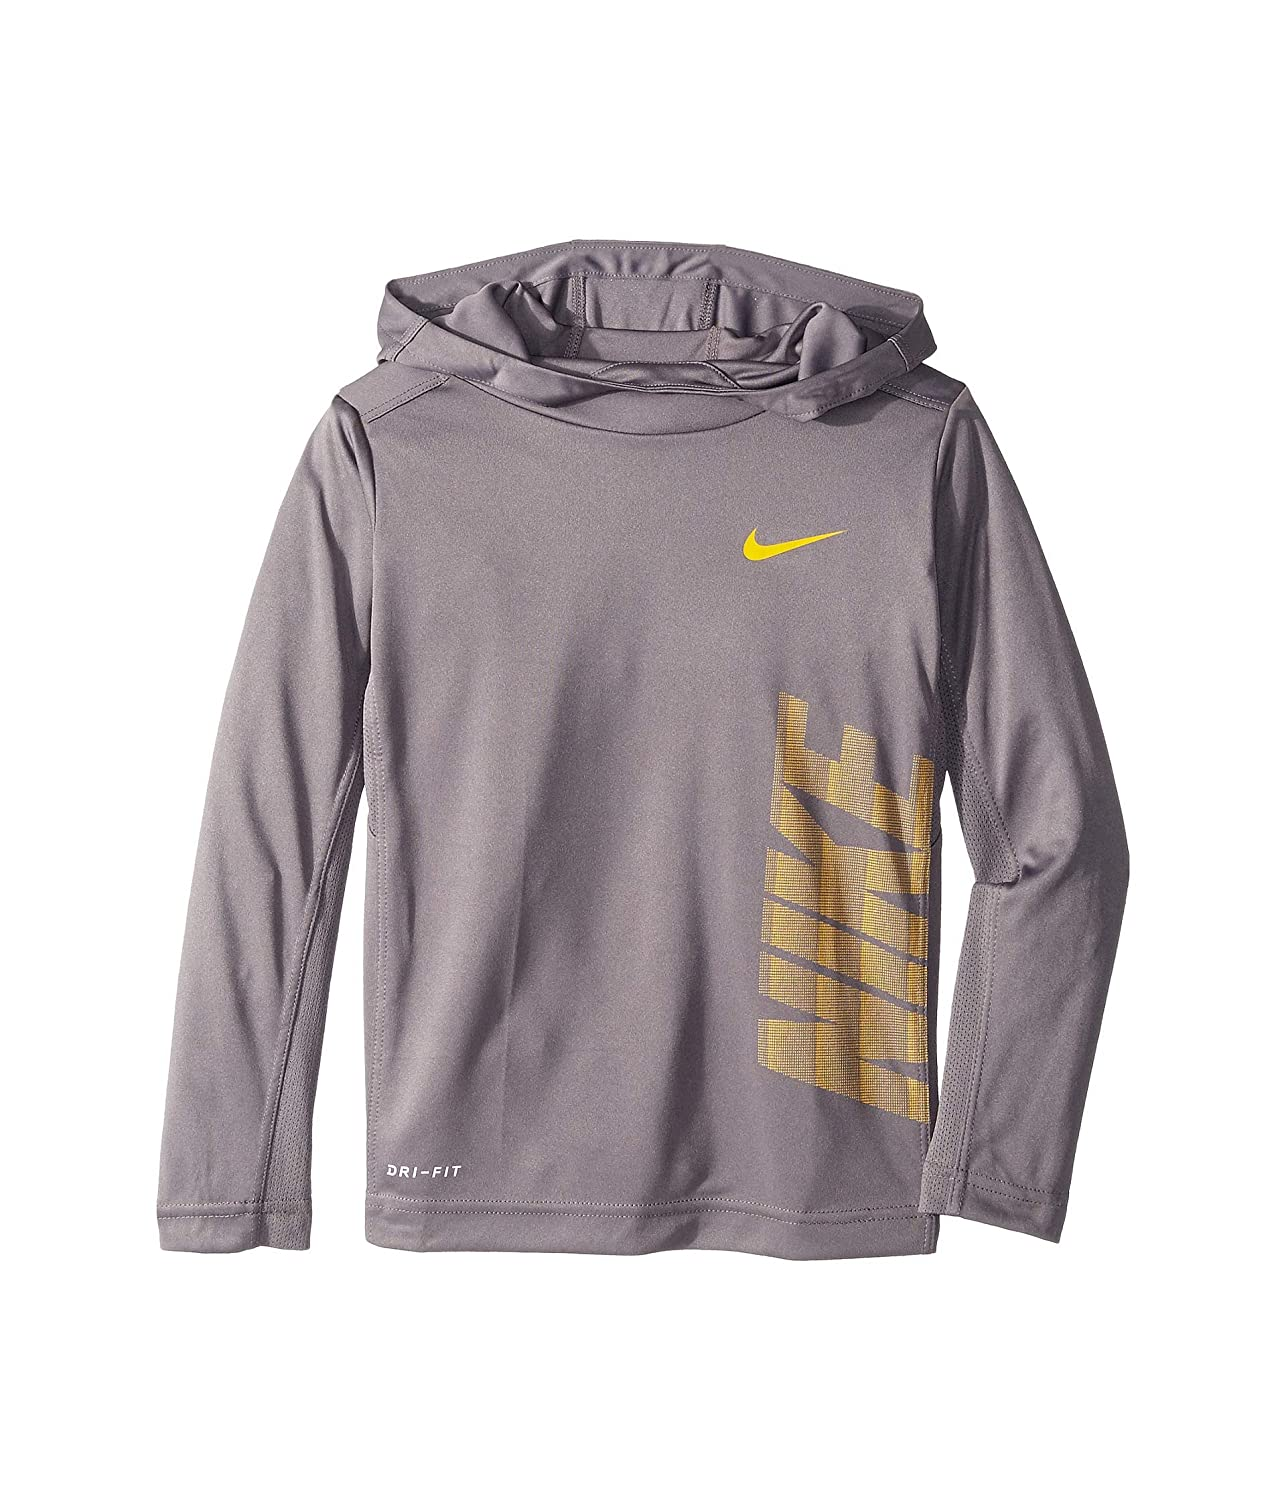 Double Logo Standard Fit Nike Black Multi Sz large Pullover Hoodie Boys